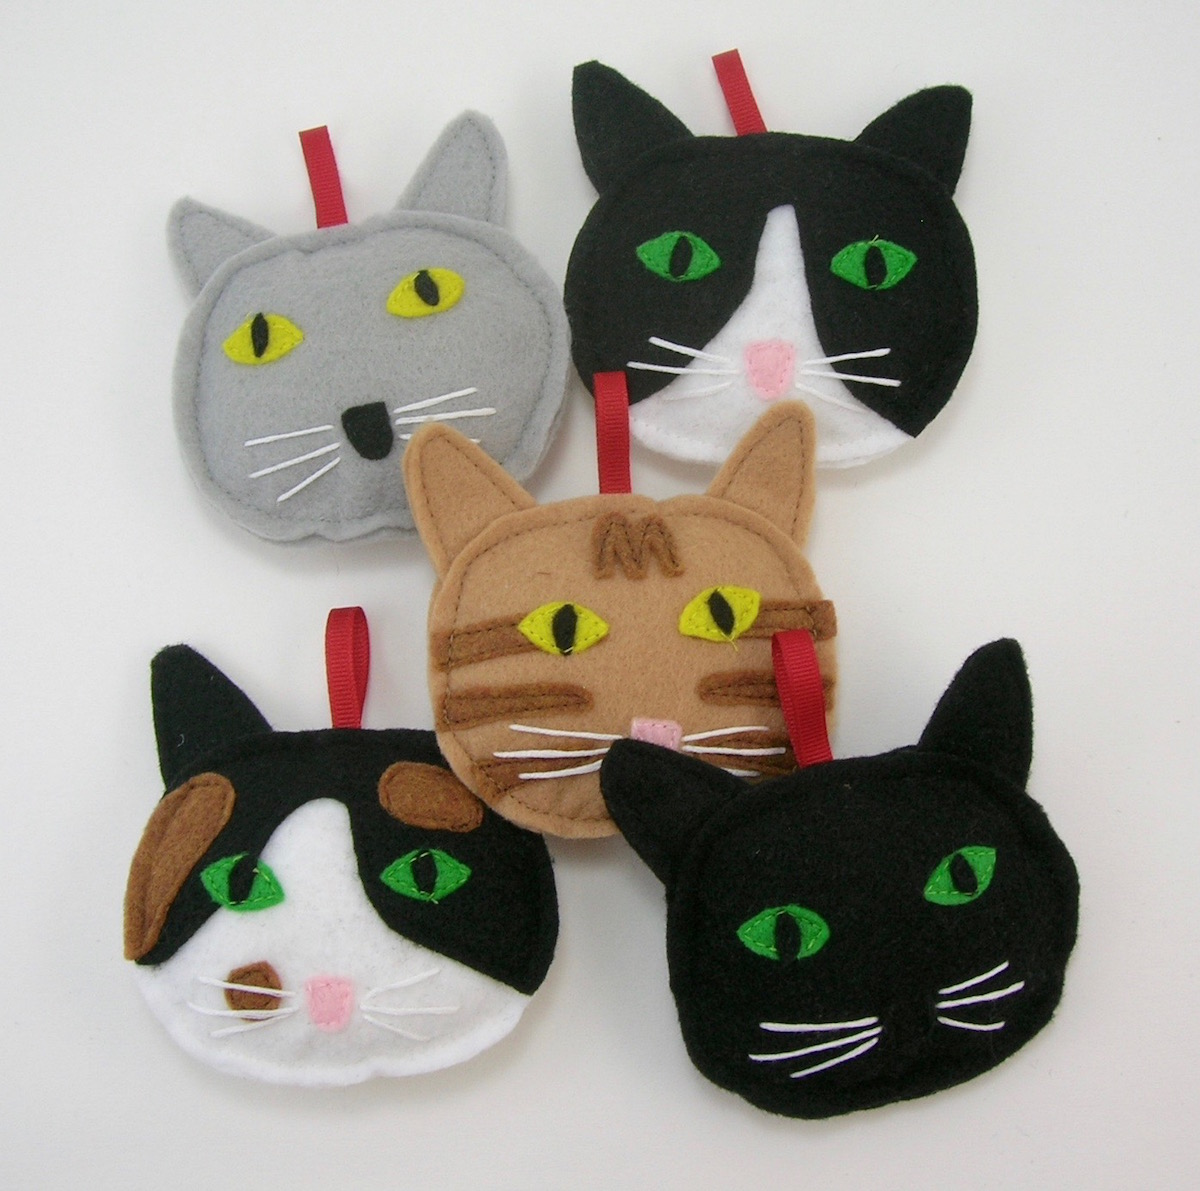 Cat Ornaments Ready for Christmas Ordering Ready To Ship